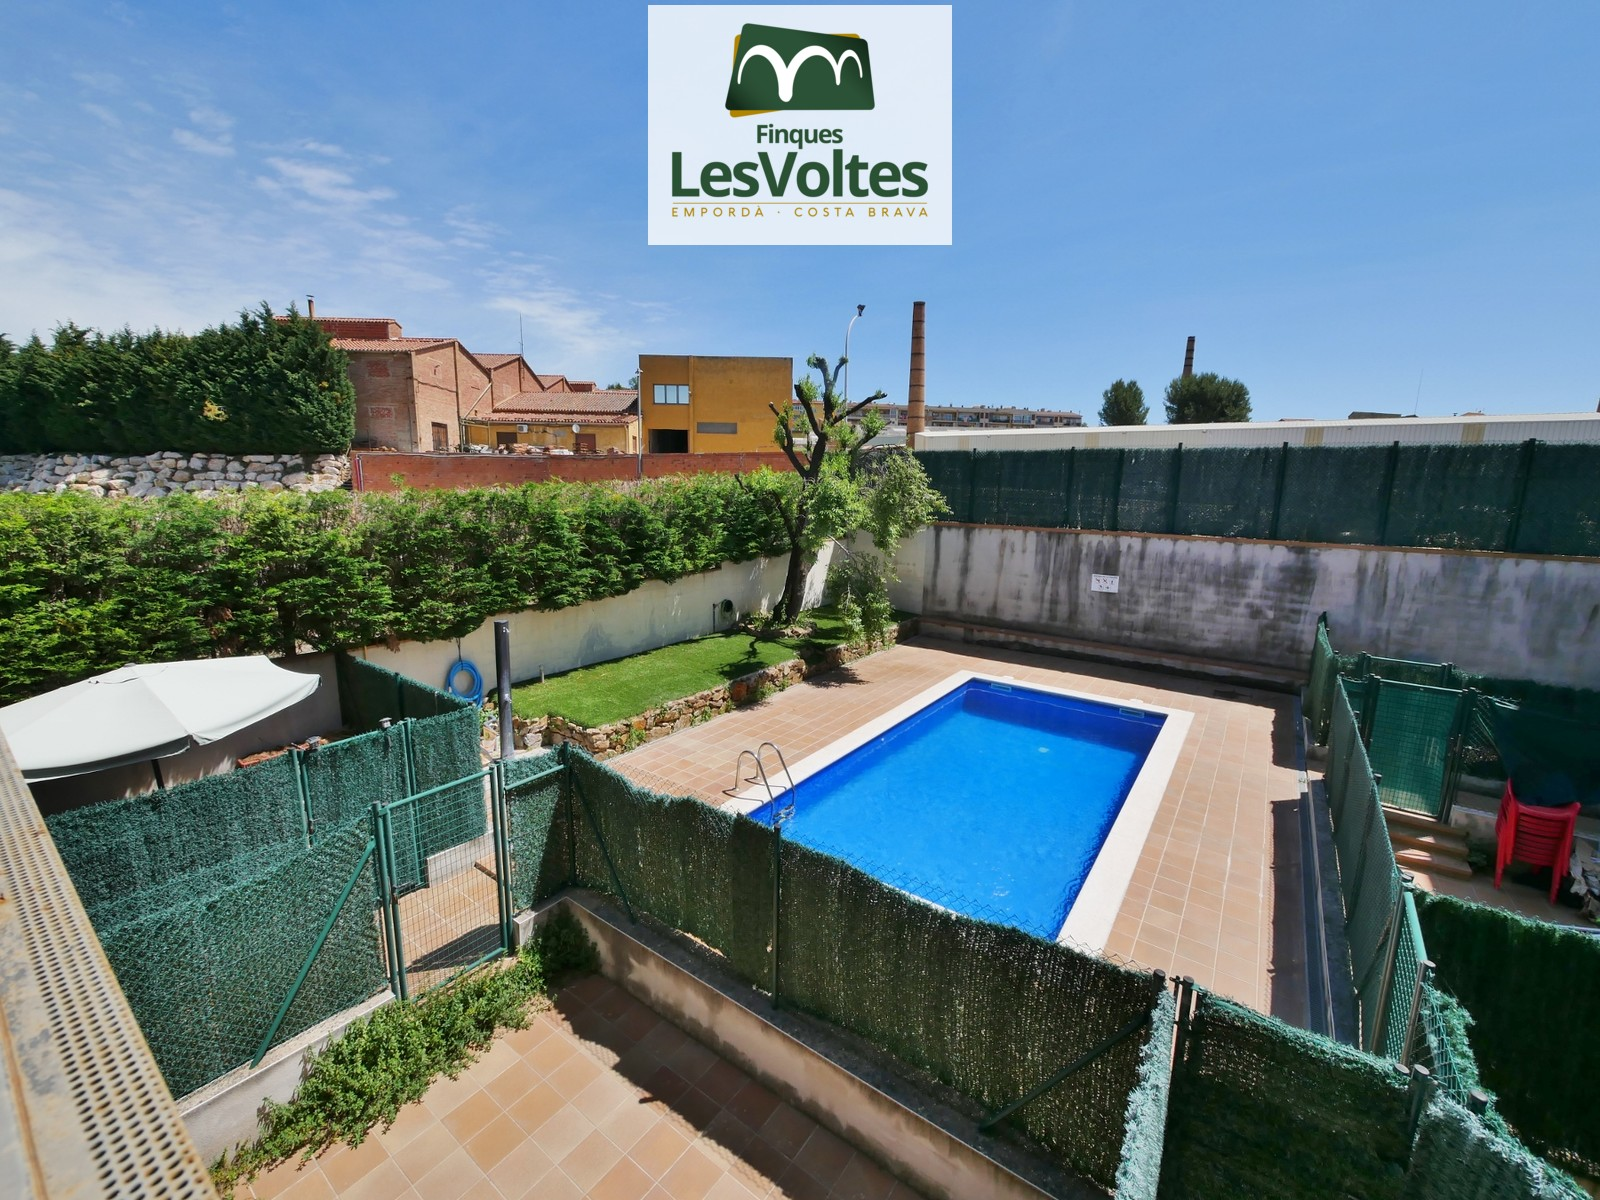 PROMOTION OF 2 AND 3 BEDROOMS FLATS IN BUILDING CLOSE TO THE CENTER OF SALE IN LA BISBAL D'EMPORDÀ.